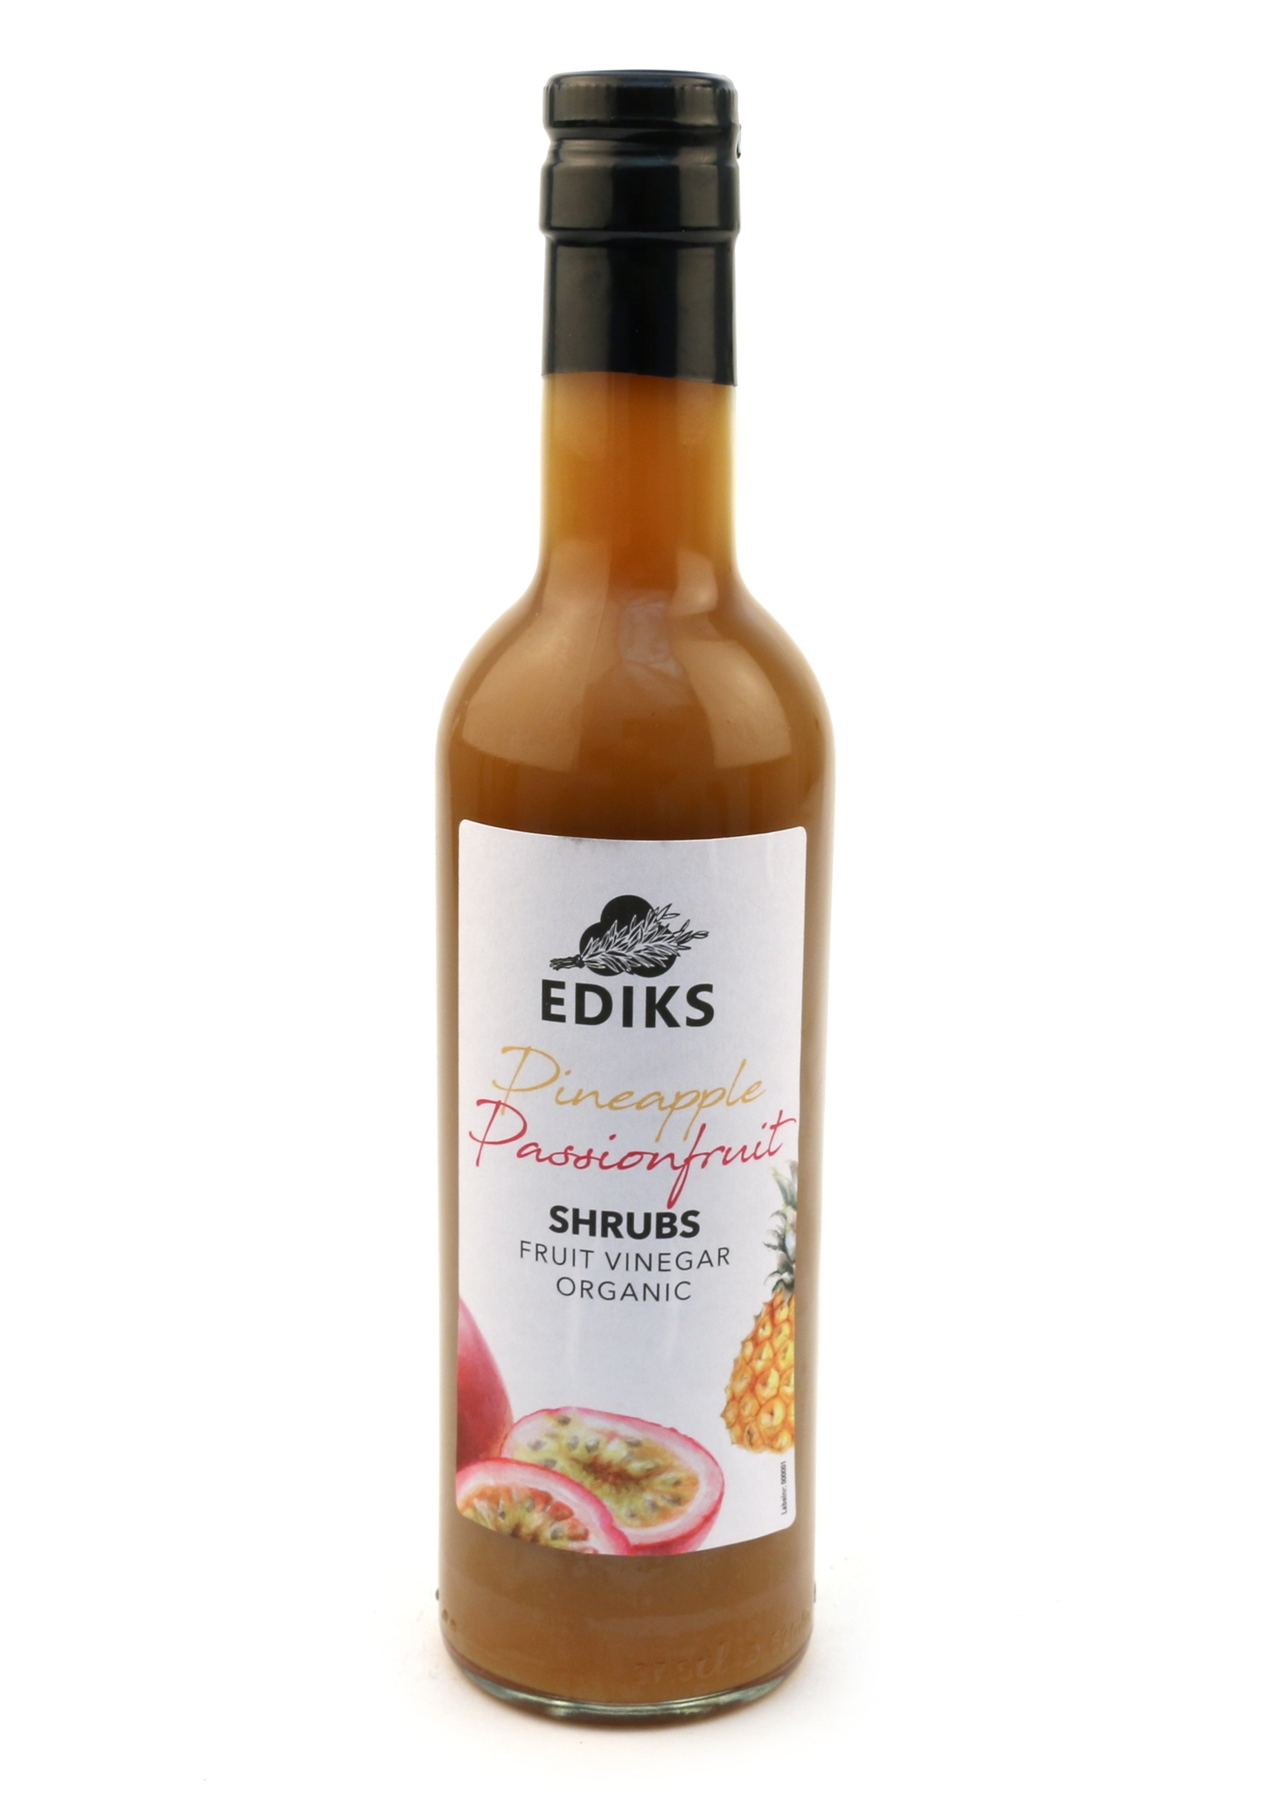 Ediks Organic Pineapple & Passionfruit Shrub Vinegar 375ml